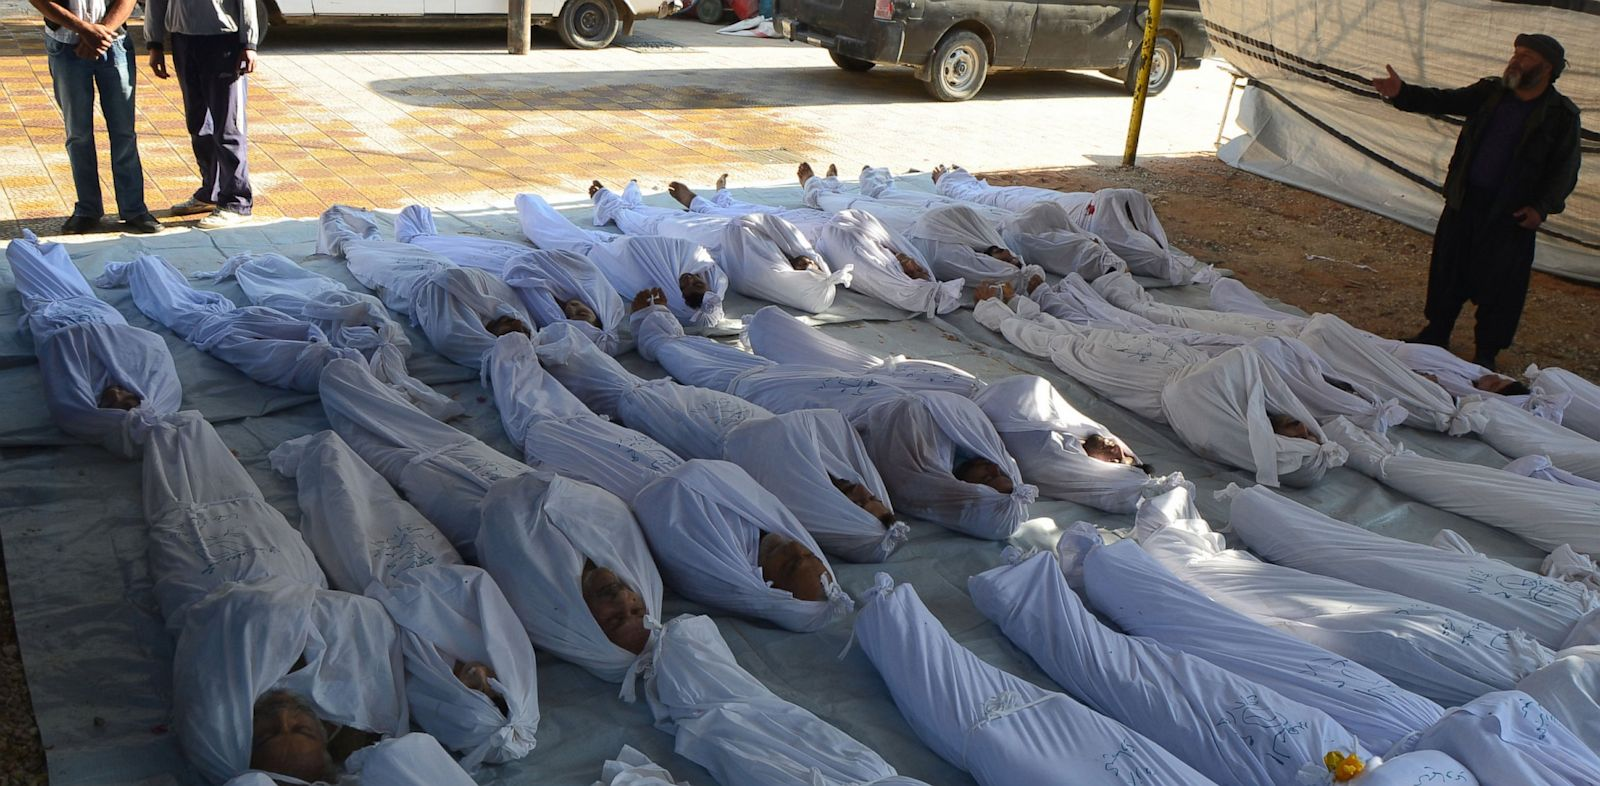 PHOTO: Syrian activists inspect the bodies of people they say were killed by nerve gas in the Ghouta region, in the Duma neighborhood of Damascus on August 21, 2013.